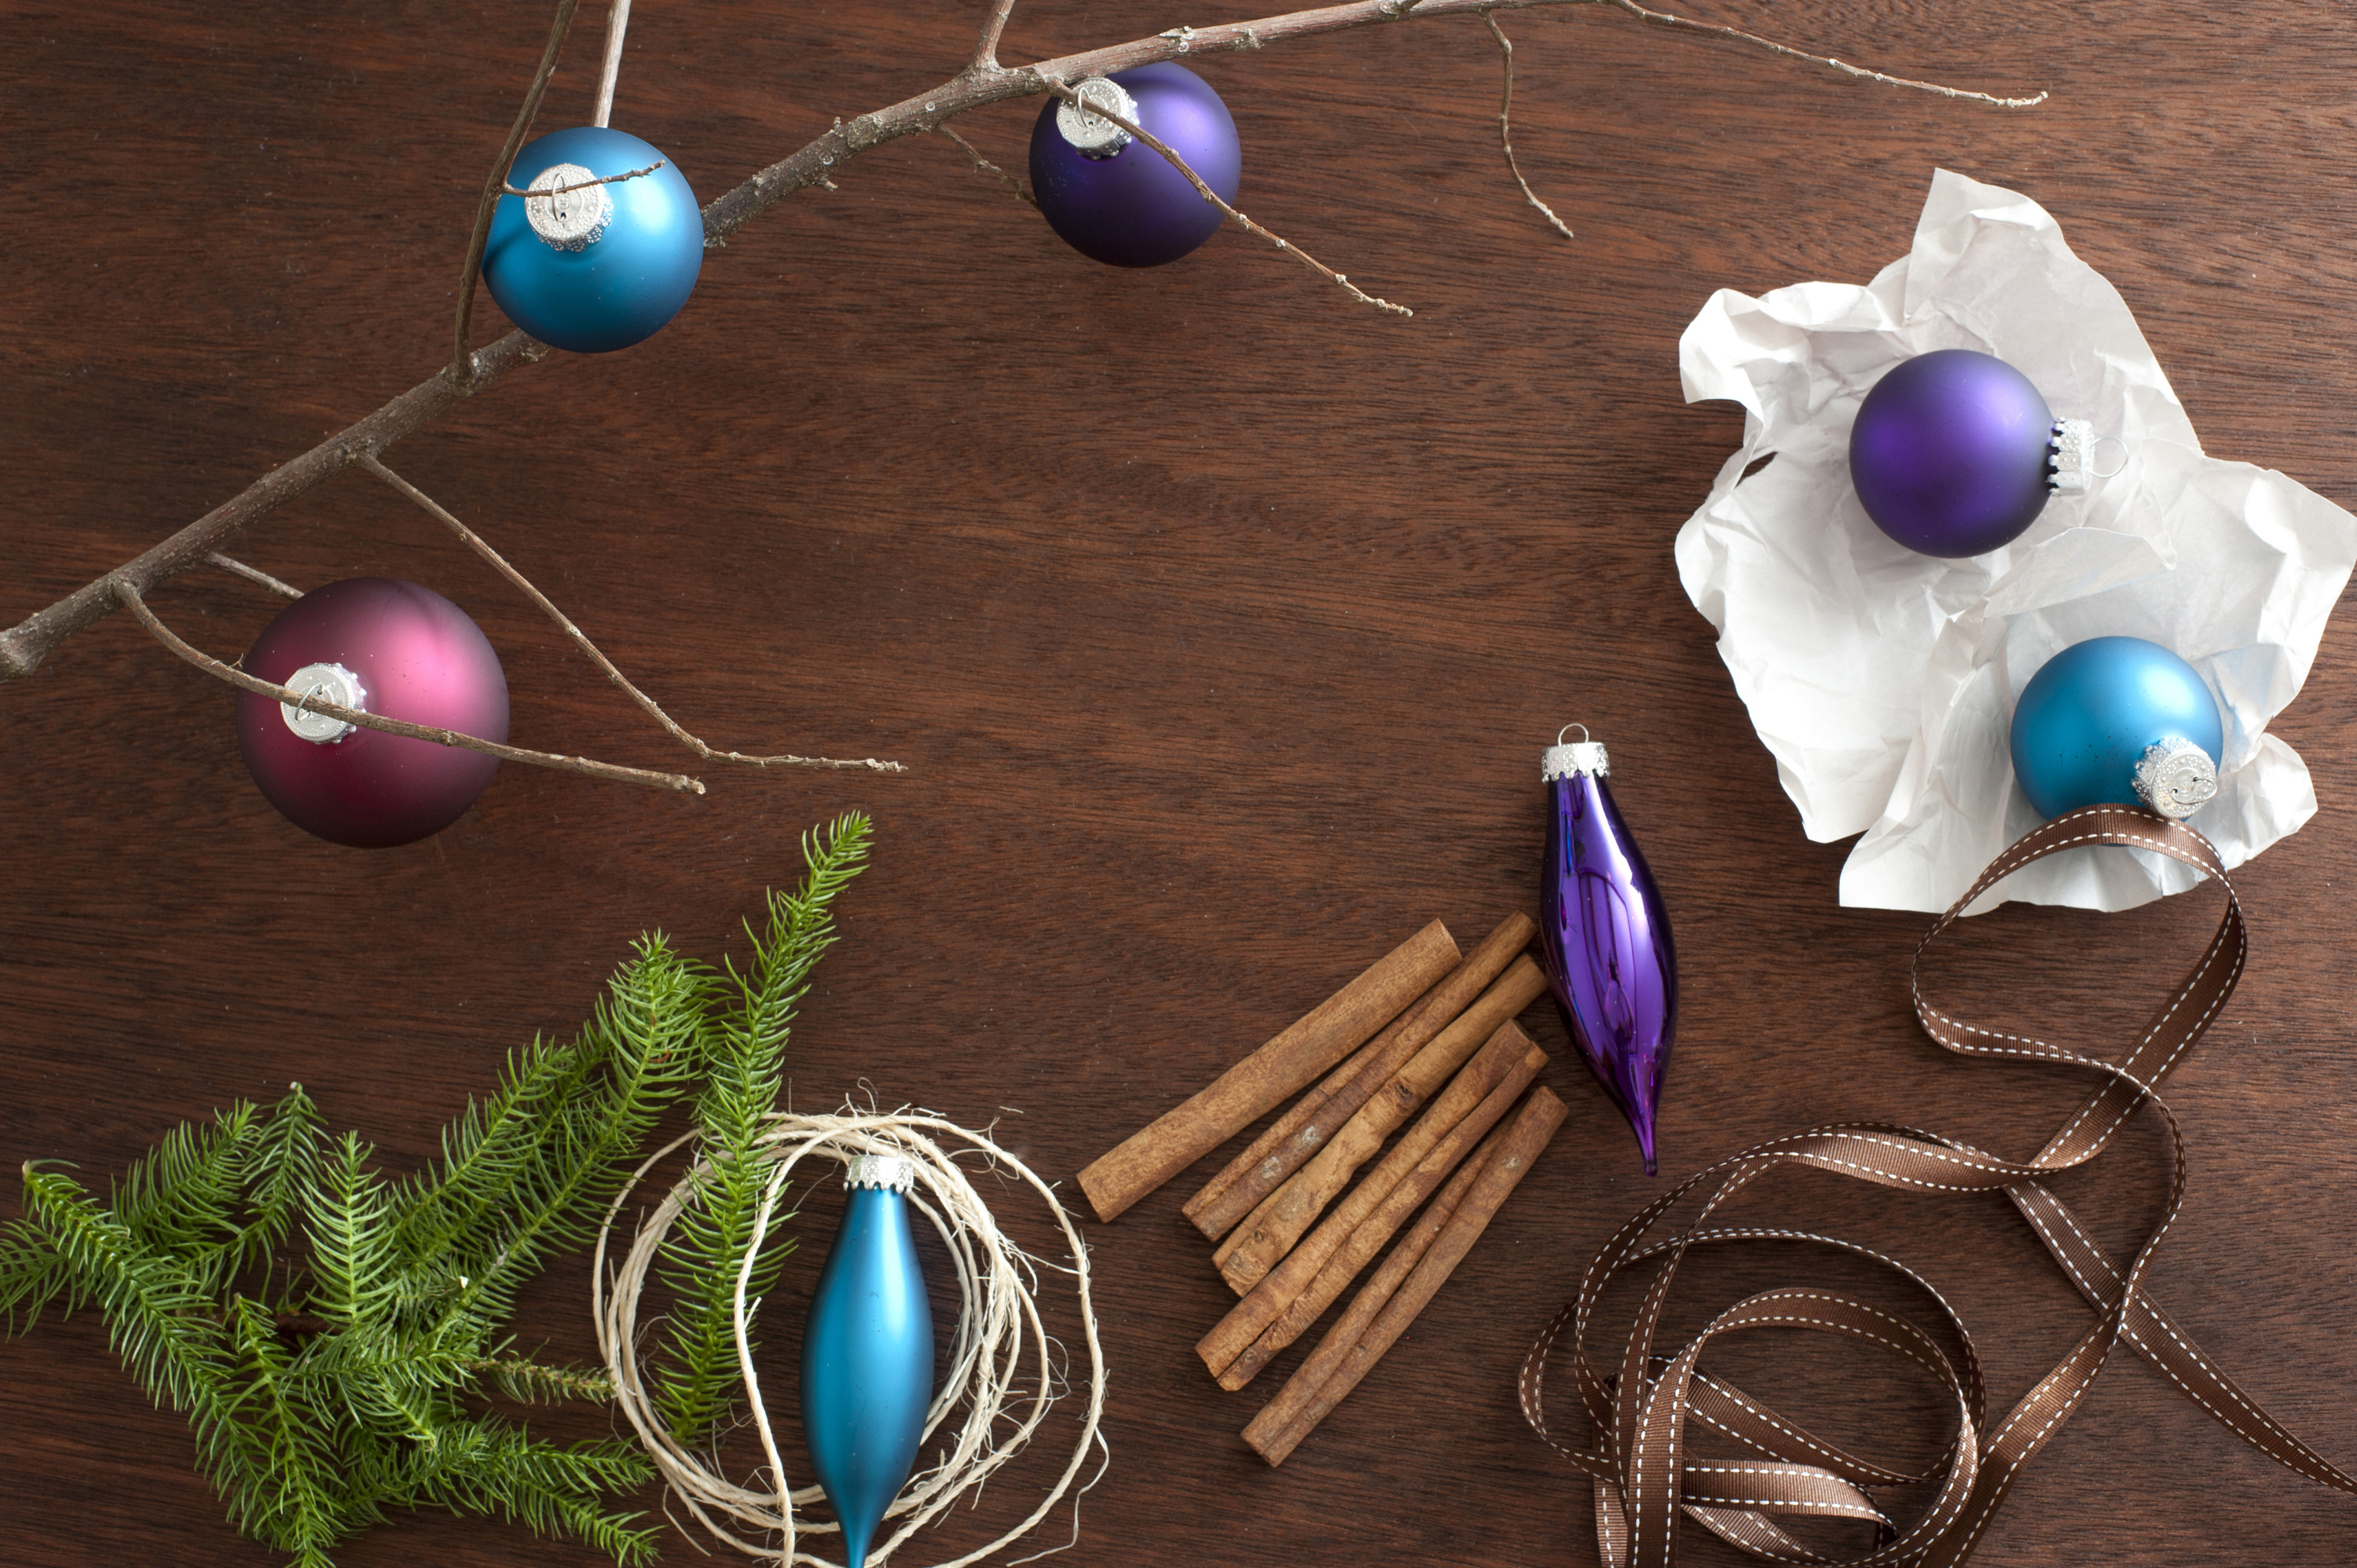 decorating for christmas, an assortment of decorations on a wooden table